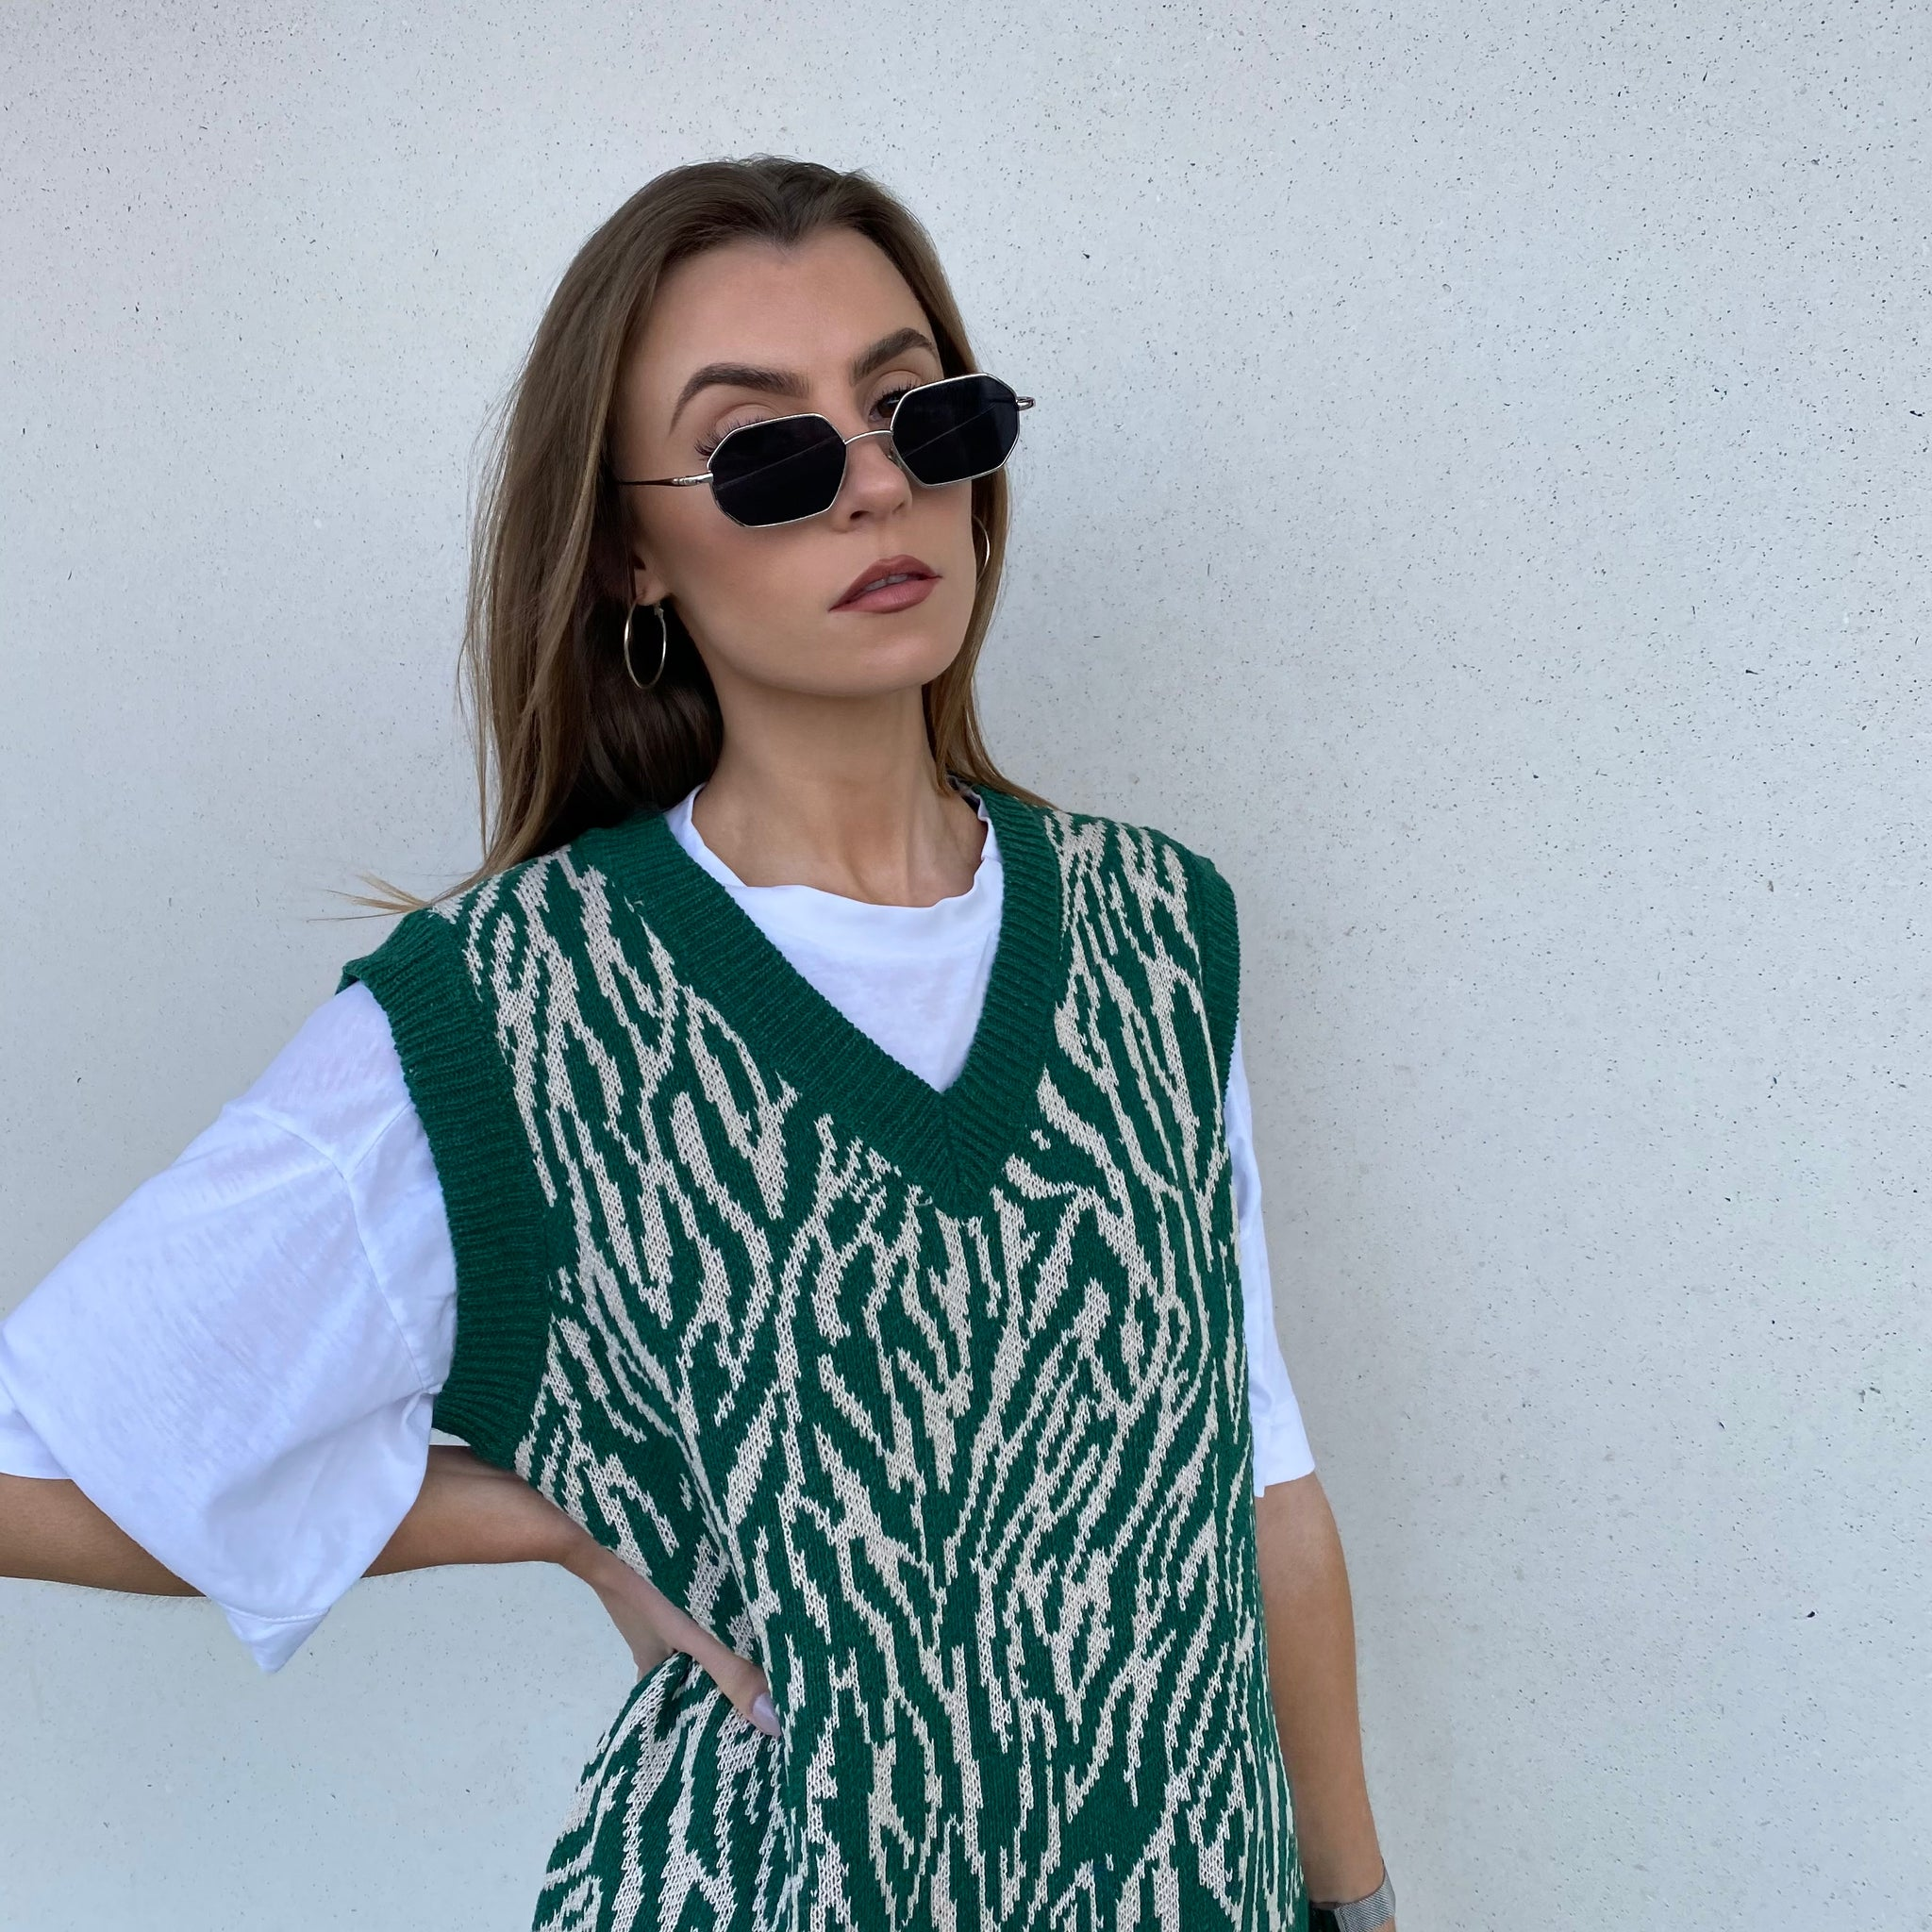 Green Zebra Heavy Knit Vest - FLXNfashion